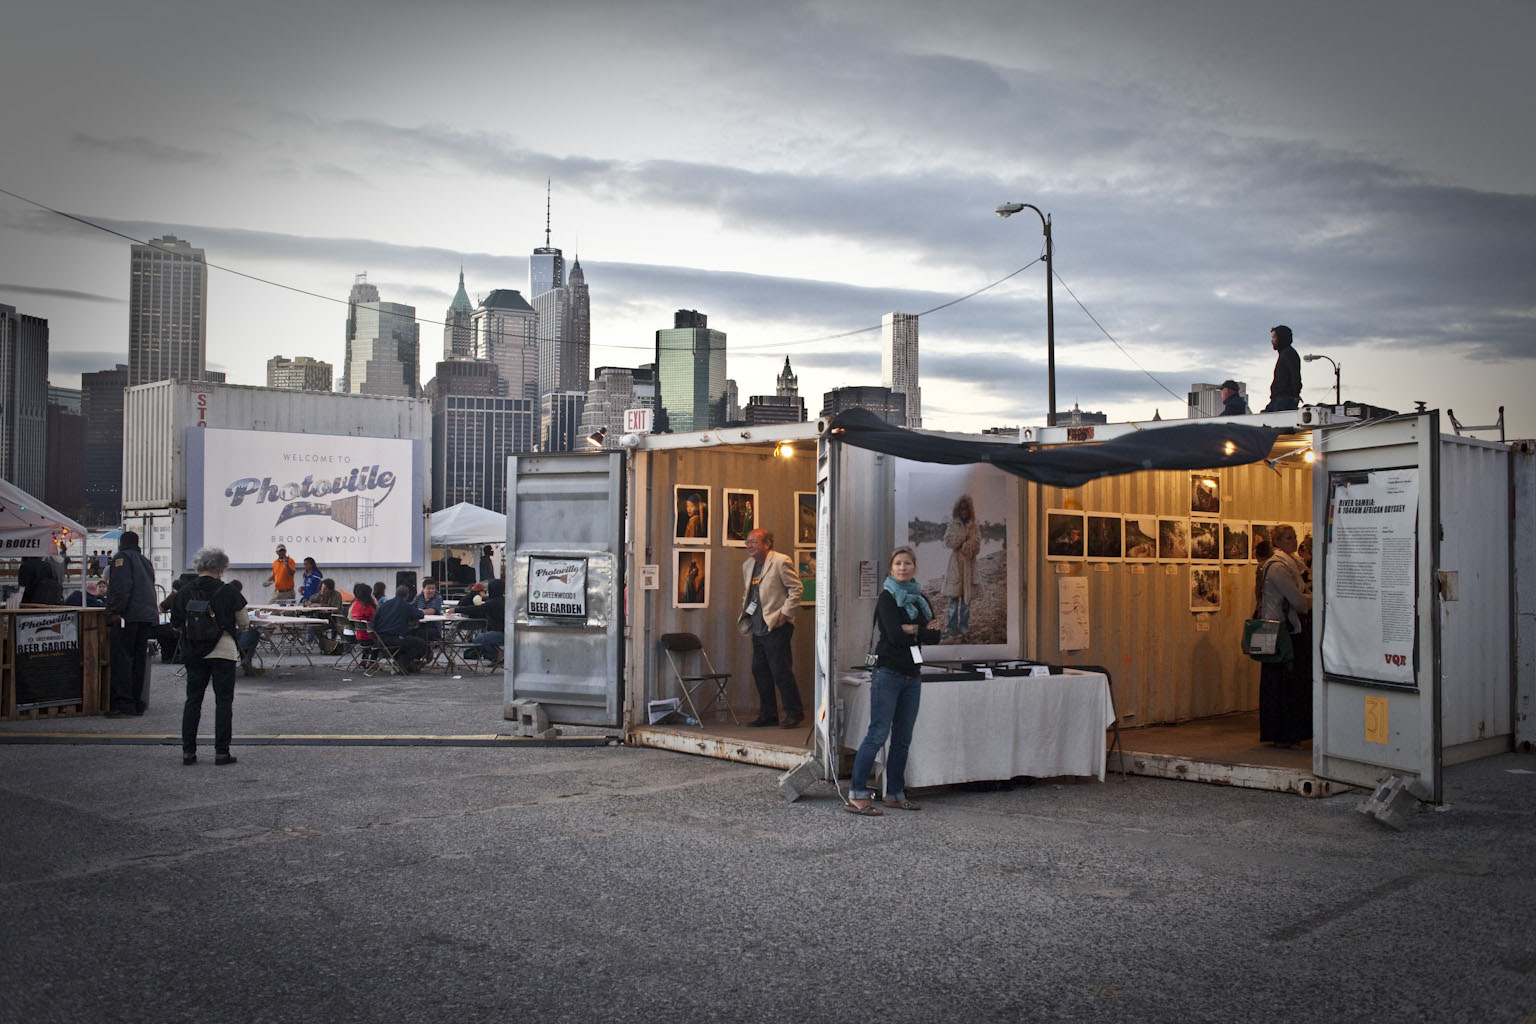 11-2017-photoville-photography-festival